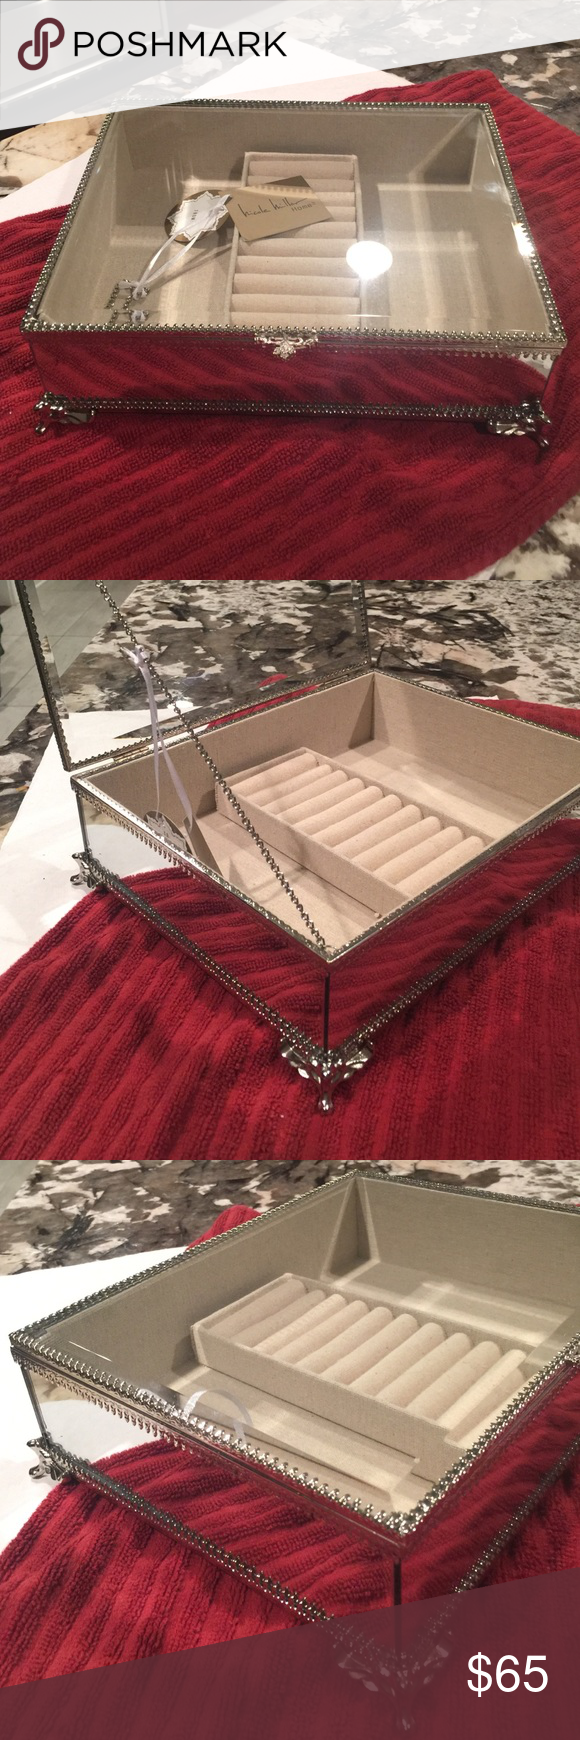 Nicole Miller Jewelry Box Custom Nwt Nicole Miller Mirrorglass Jewelry Box Mirrored Sides Glass Top Decorating Design